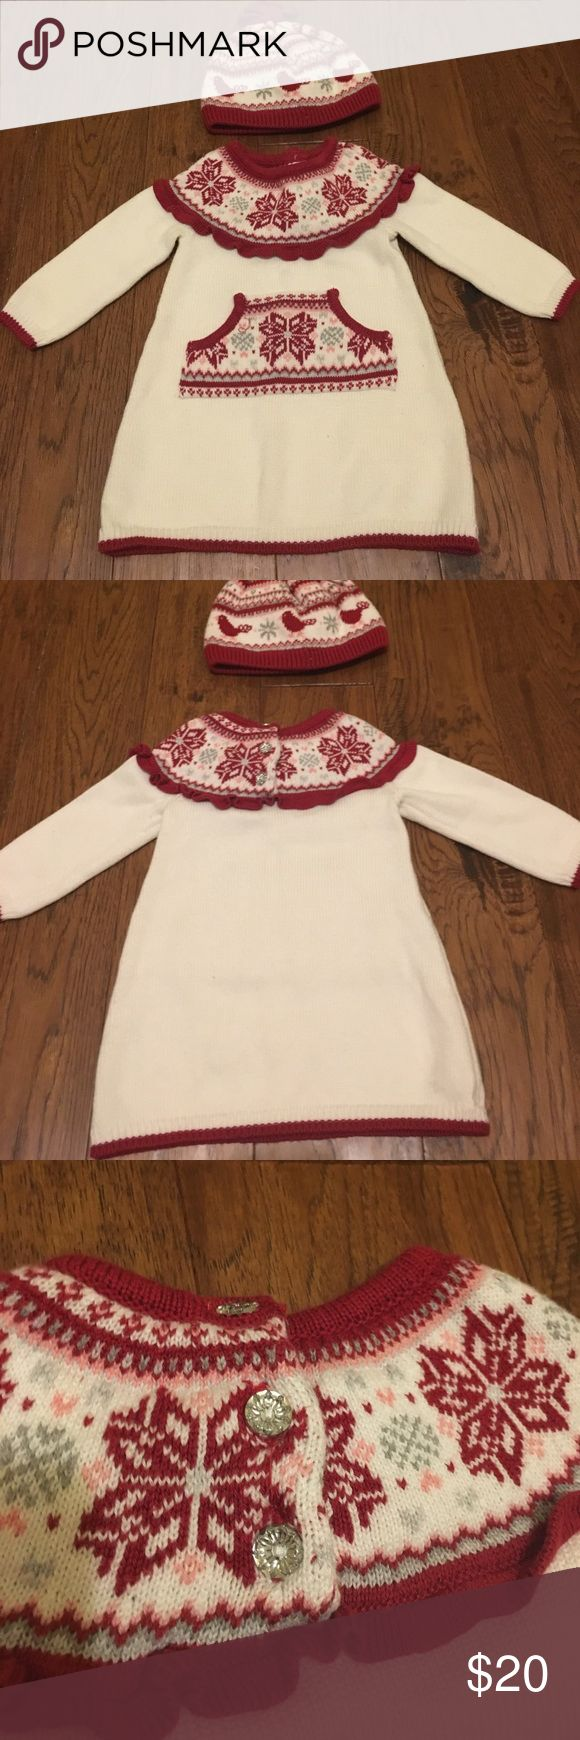 Gymboree Sweater Dress & Hat These are both in fabulous condition. The dress is 6-12 months & the hat is 2-3T I still used the hat on my daughter with the dress.  It actually covered her ears quite nicely because it was a little big.  The set comes from a smoke/pet free home. Gymboree Dresses